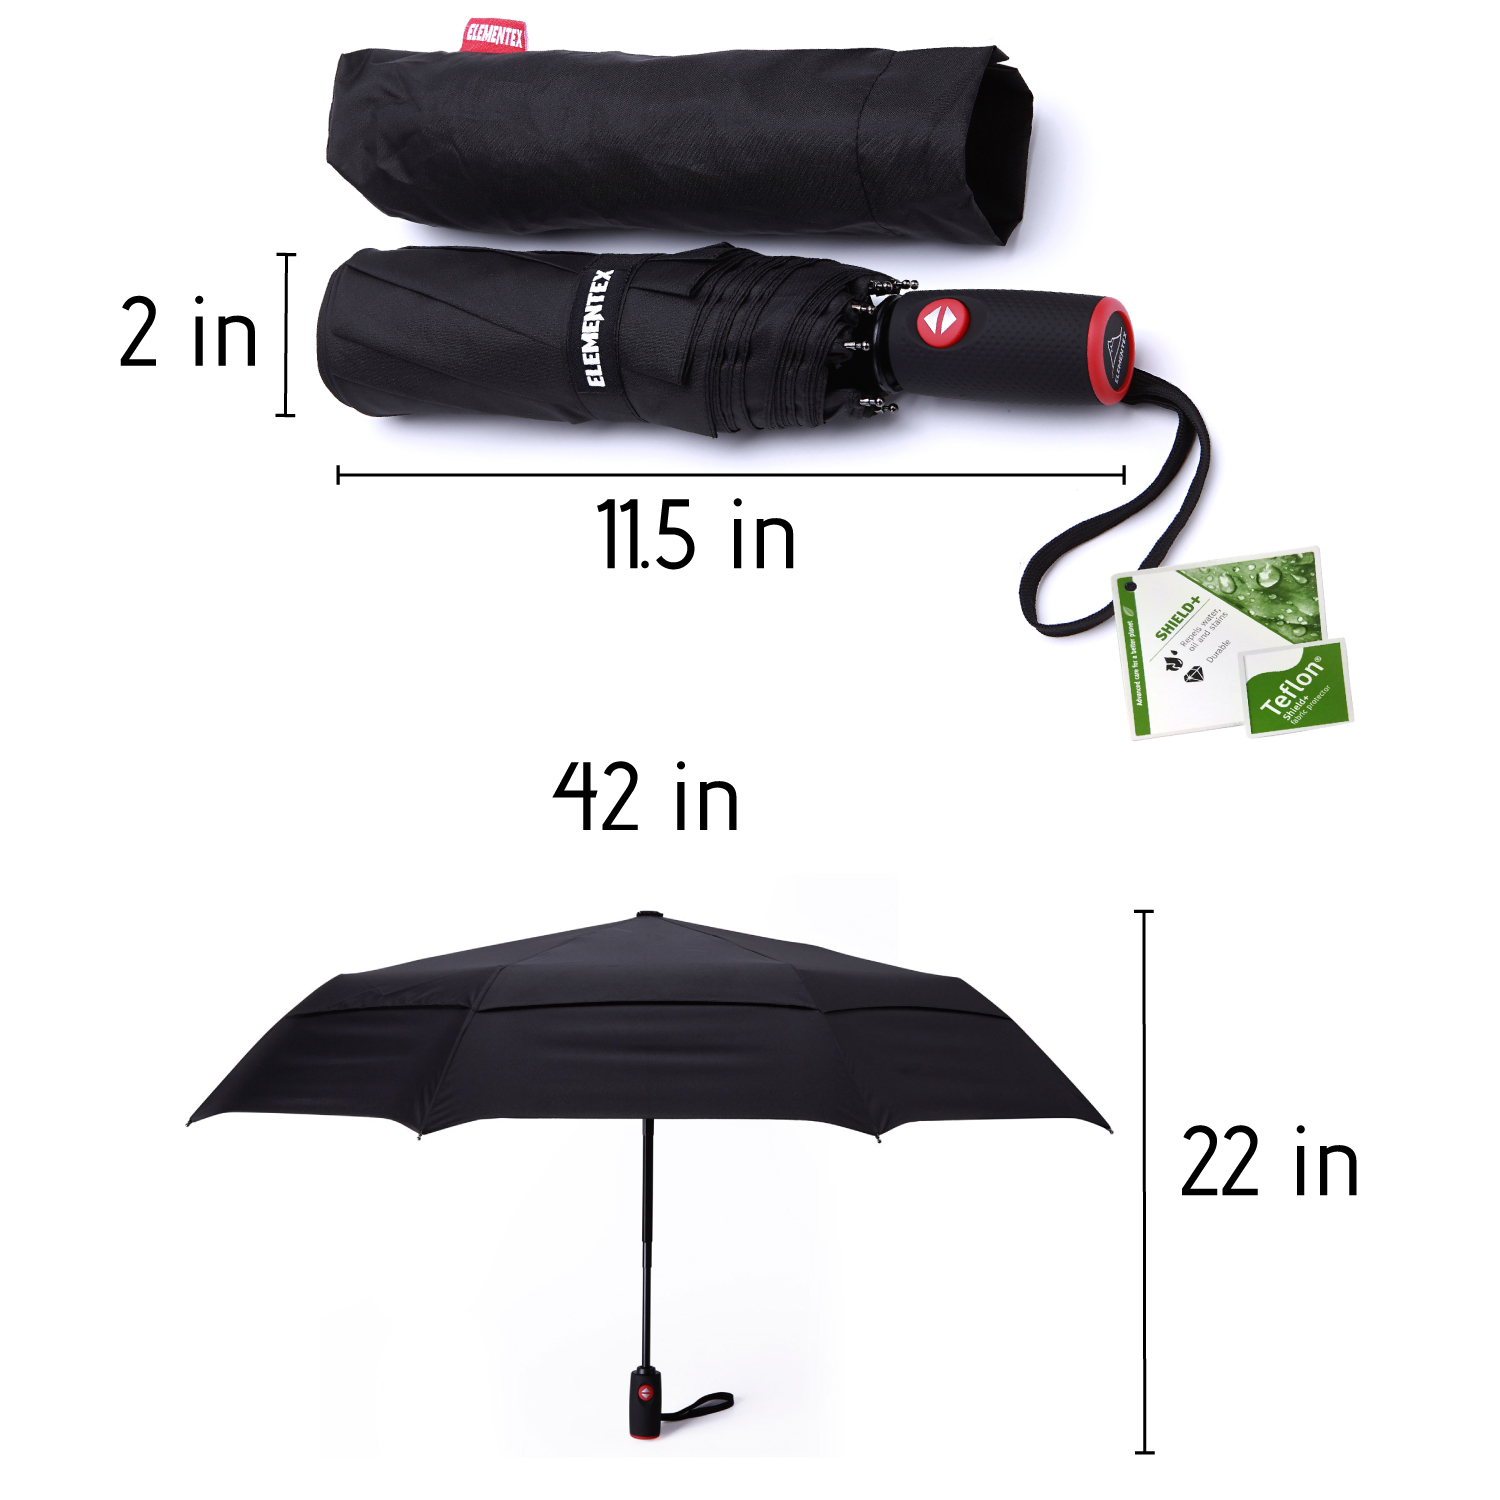 Galaxy Wolf Automatic Windproof Travel Umbrella Compact Canopy With Black Glue And UV-resistant Coating